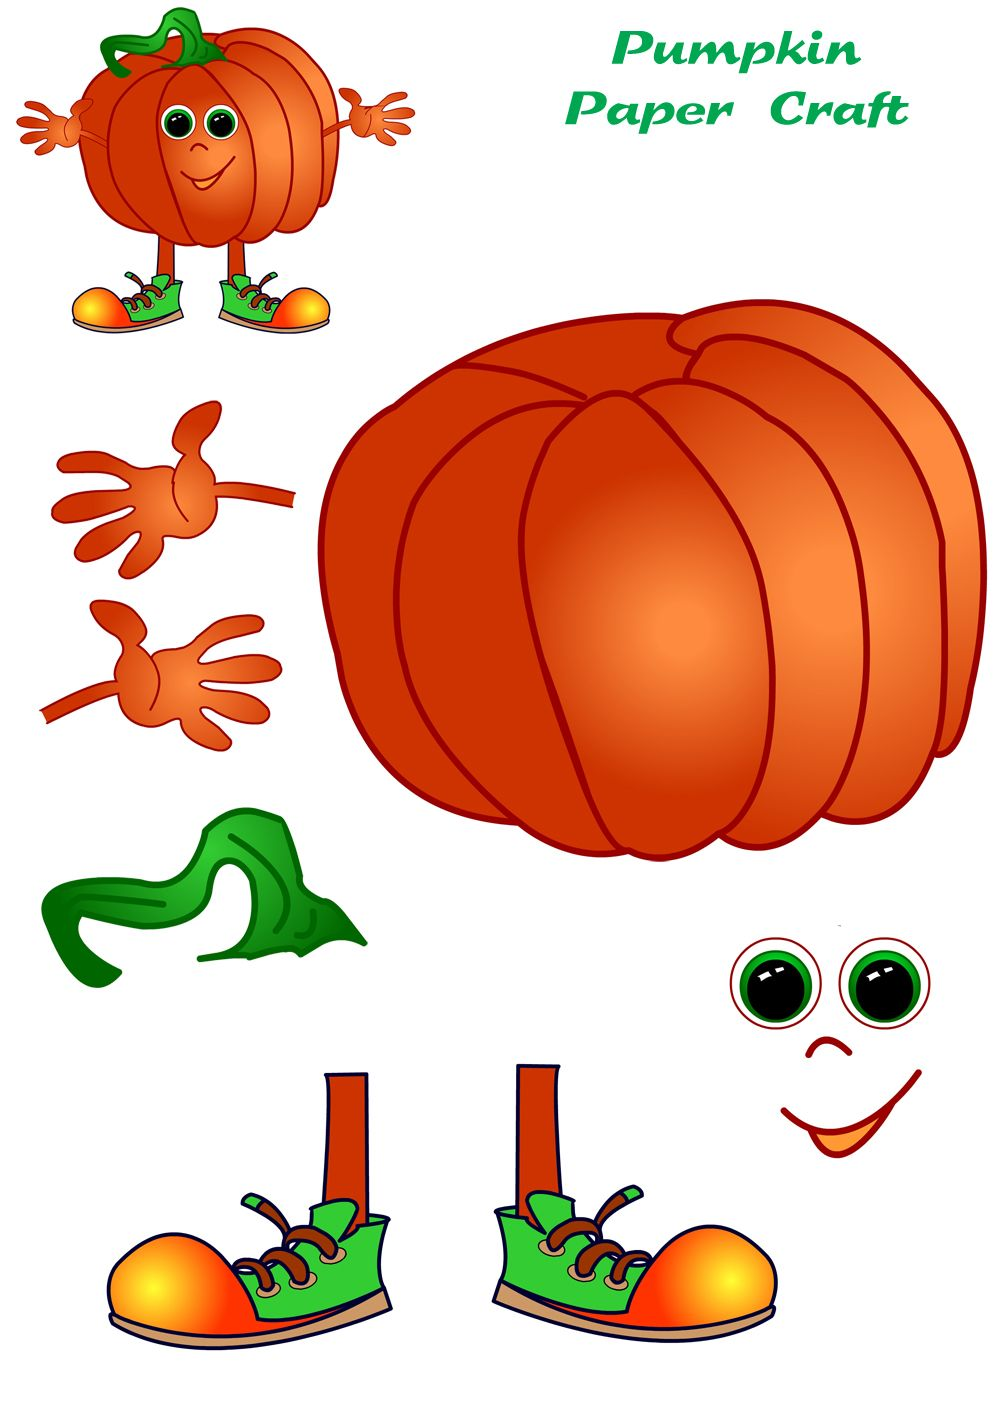 48+ Paper pumpkin crafts for toddlers ideas in 2021